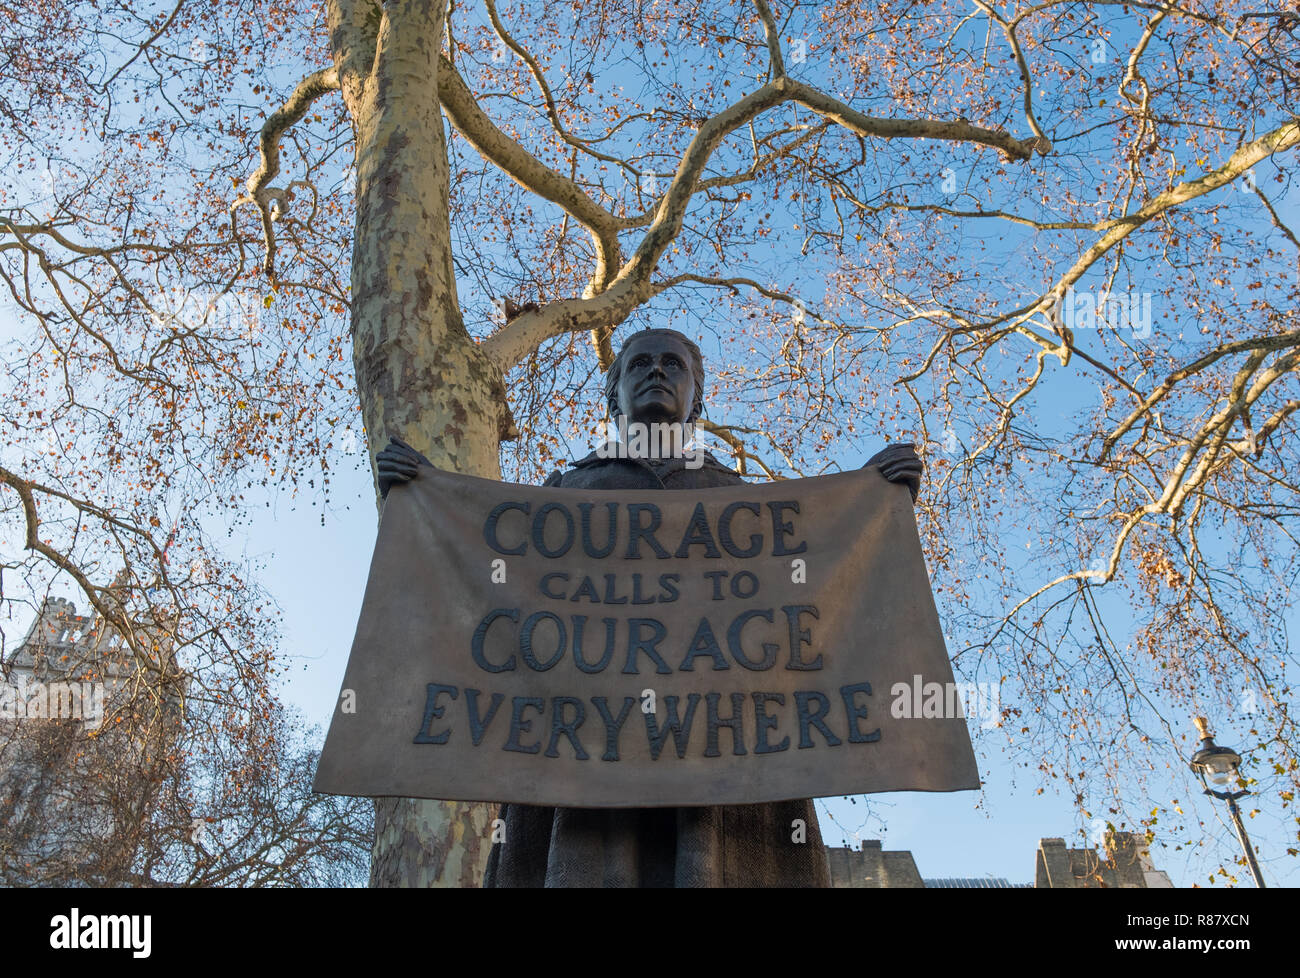 Suffragist Millicent Fawcett bronze statue by Gillian Wearing, Parliament Square, London - Stock Image